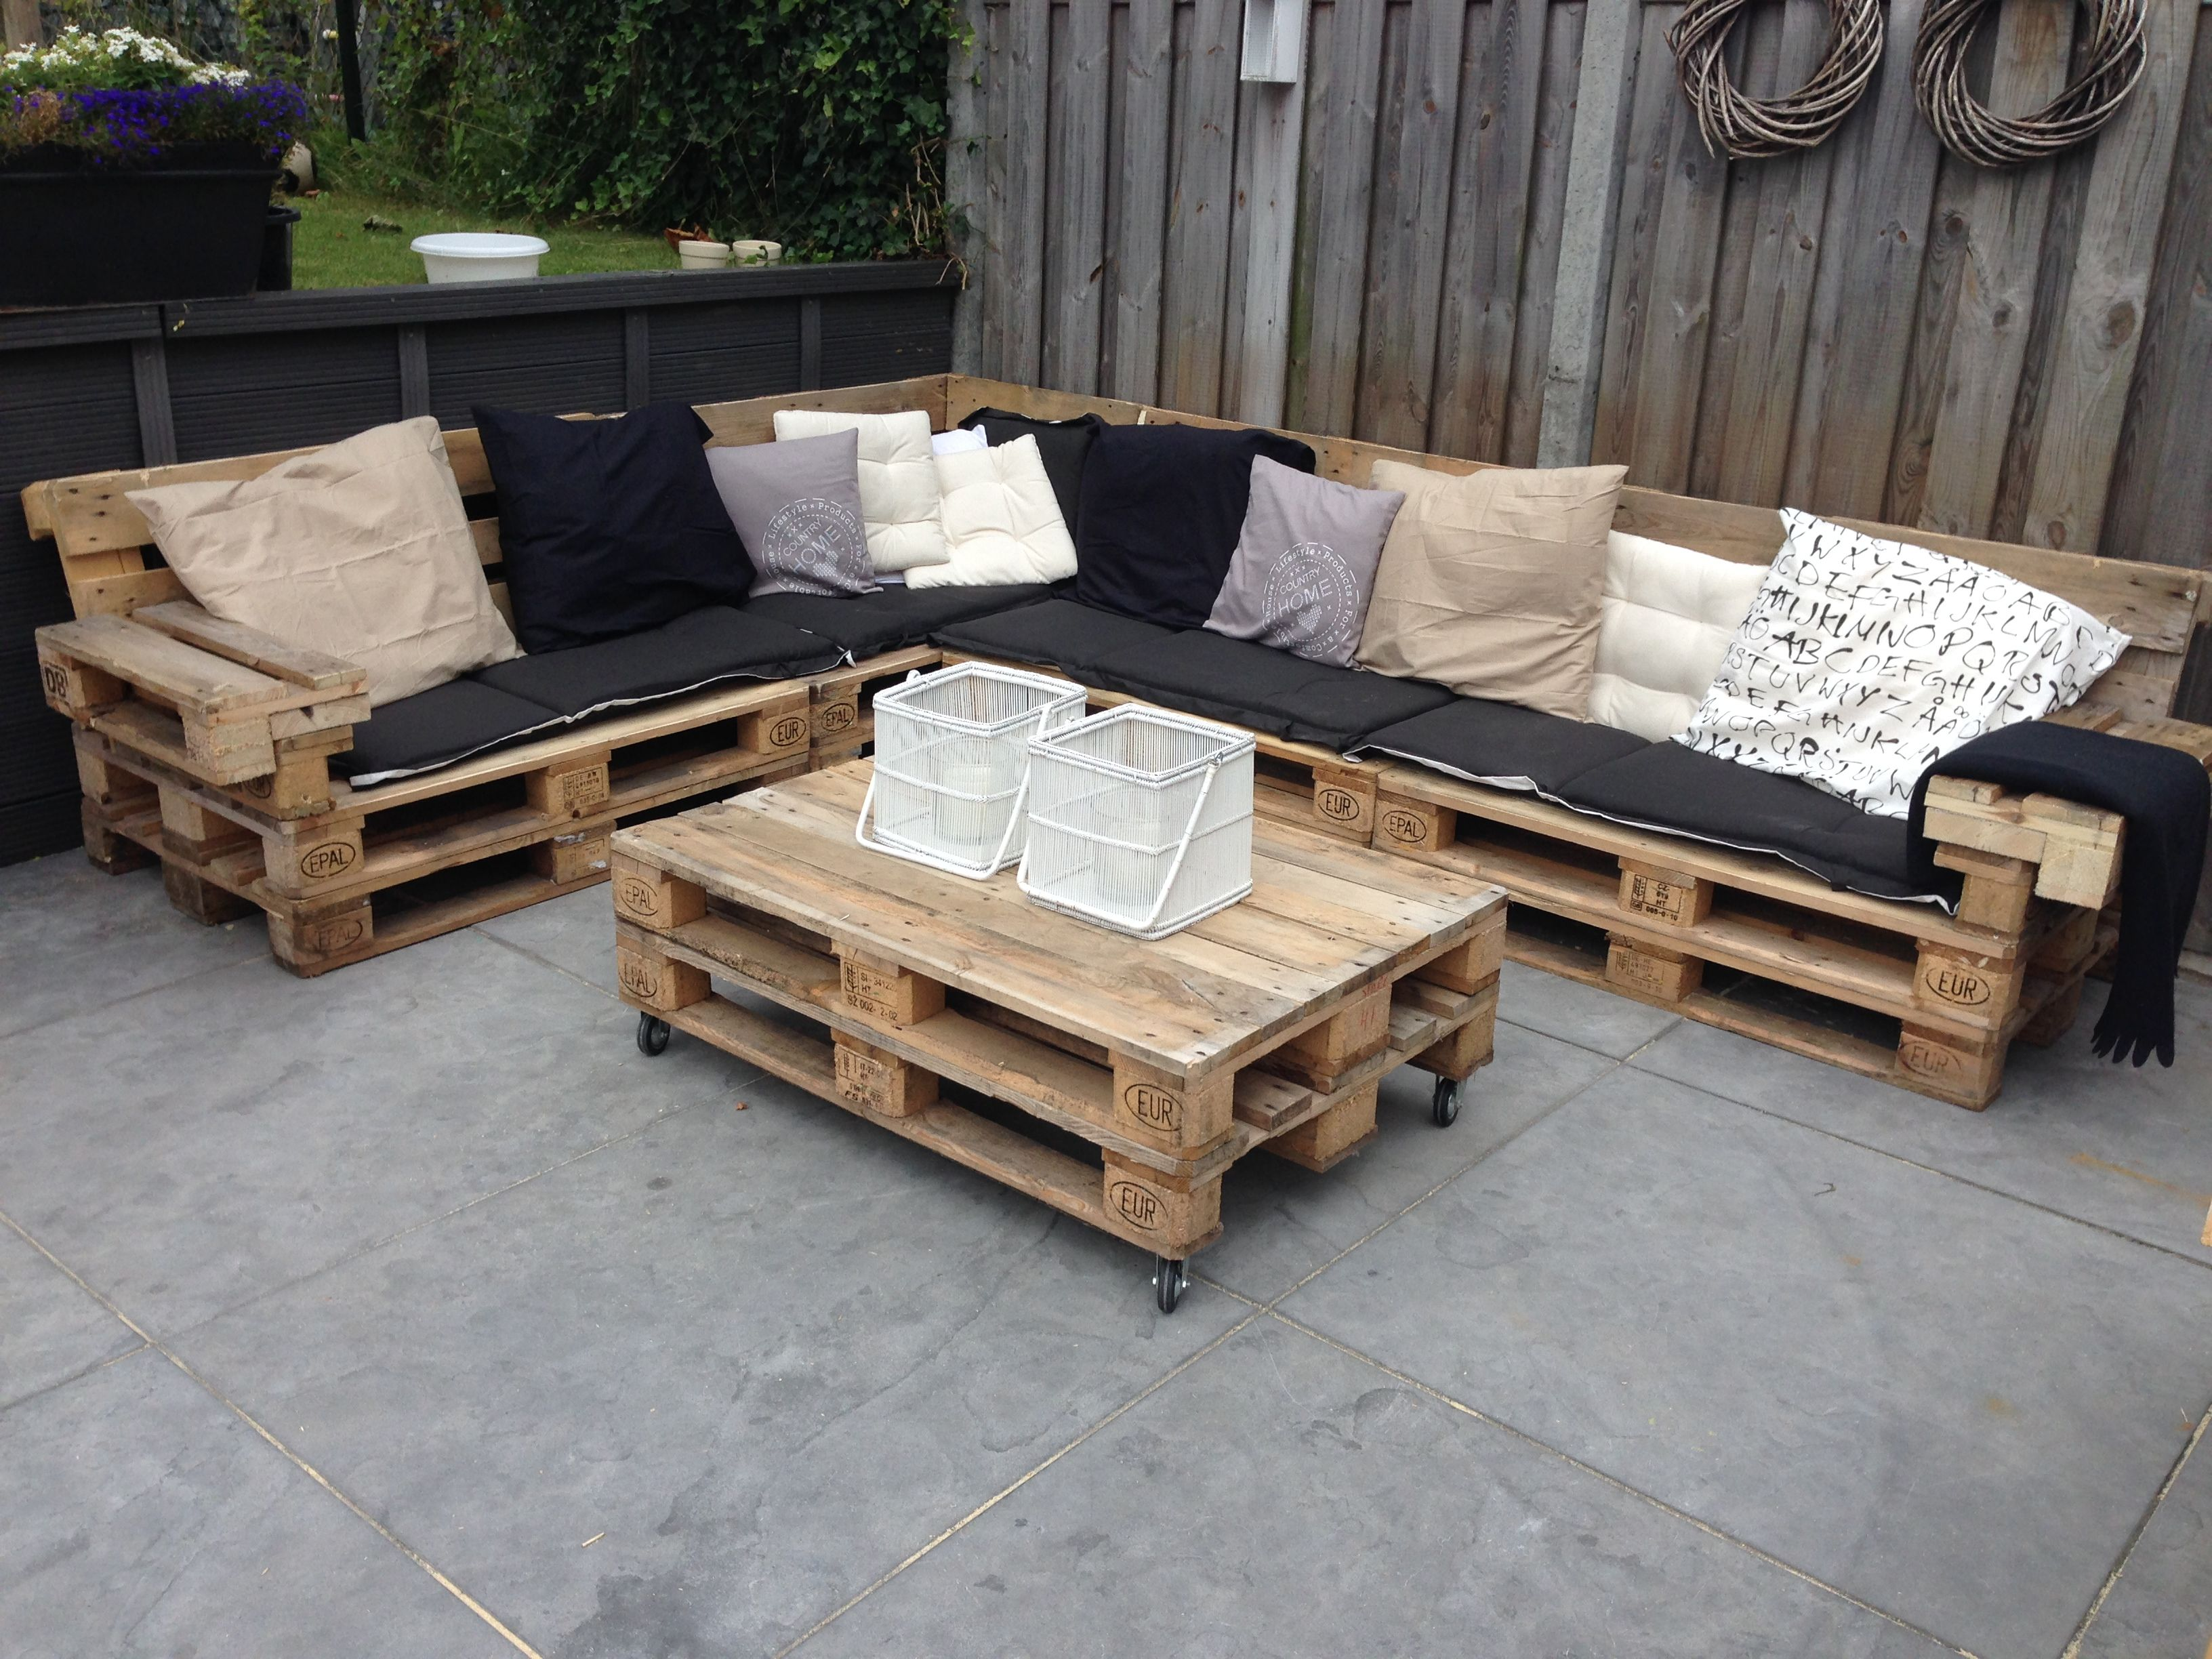 Royal Mobilya Bochum Lounge Set With Repurposed Euro Pallets Recycled Pallets Ideas